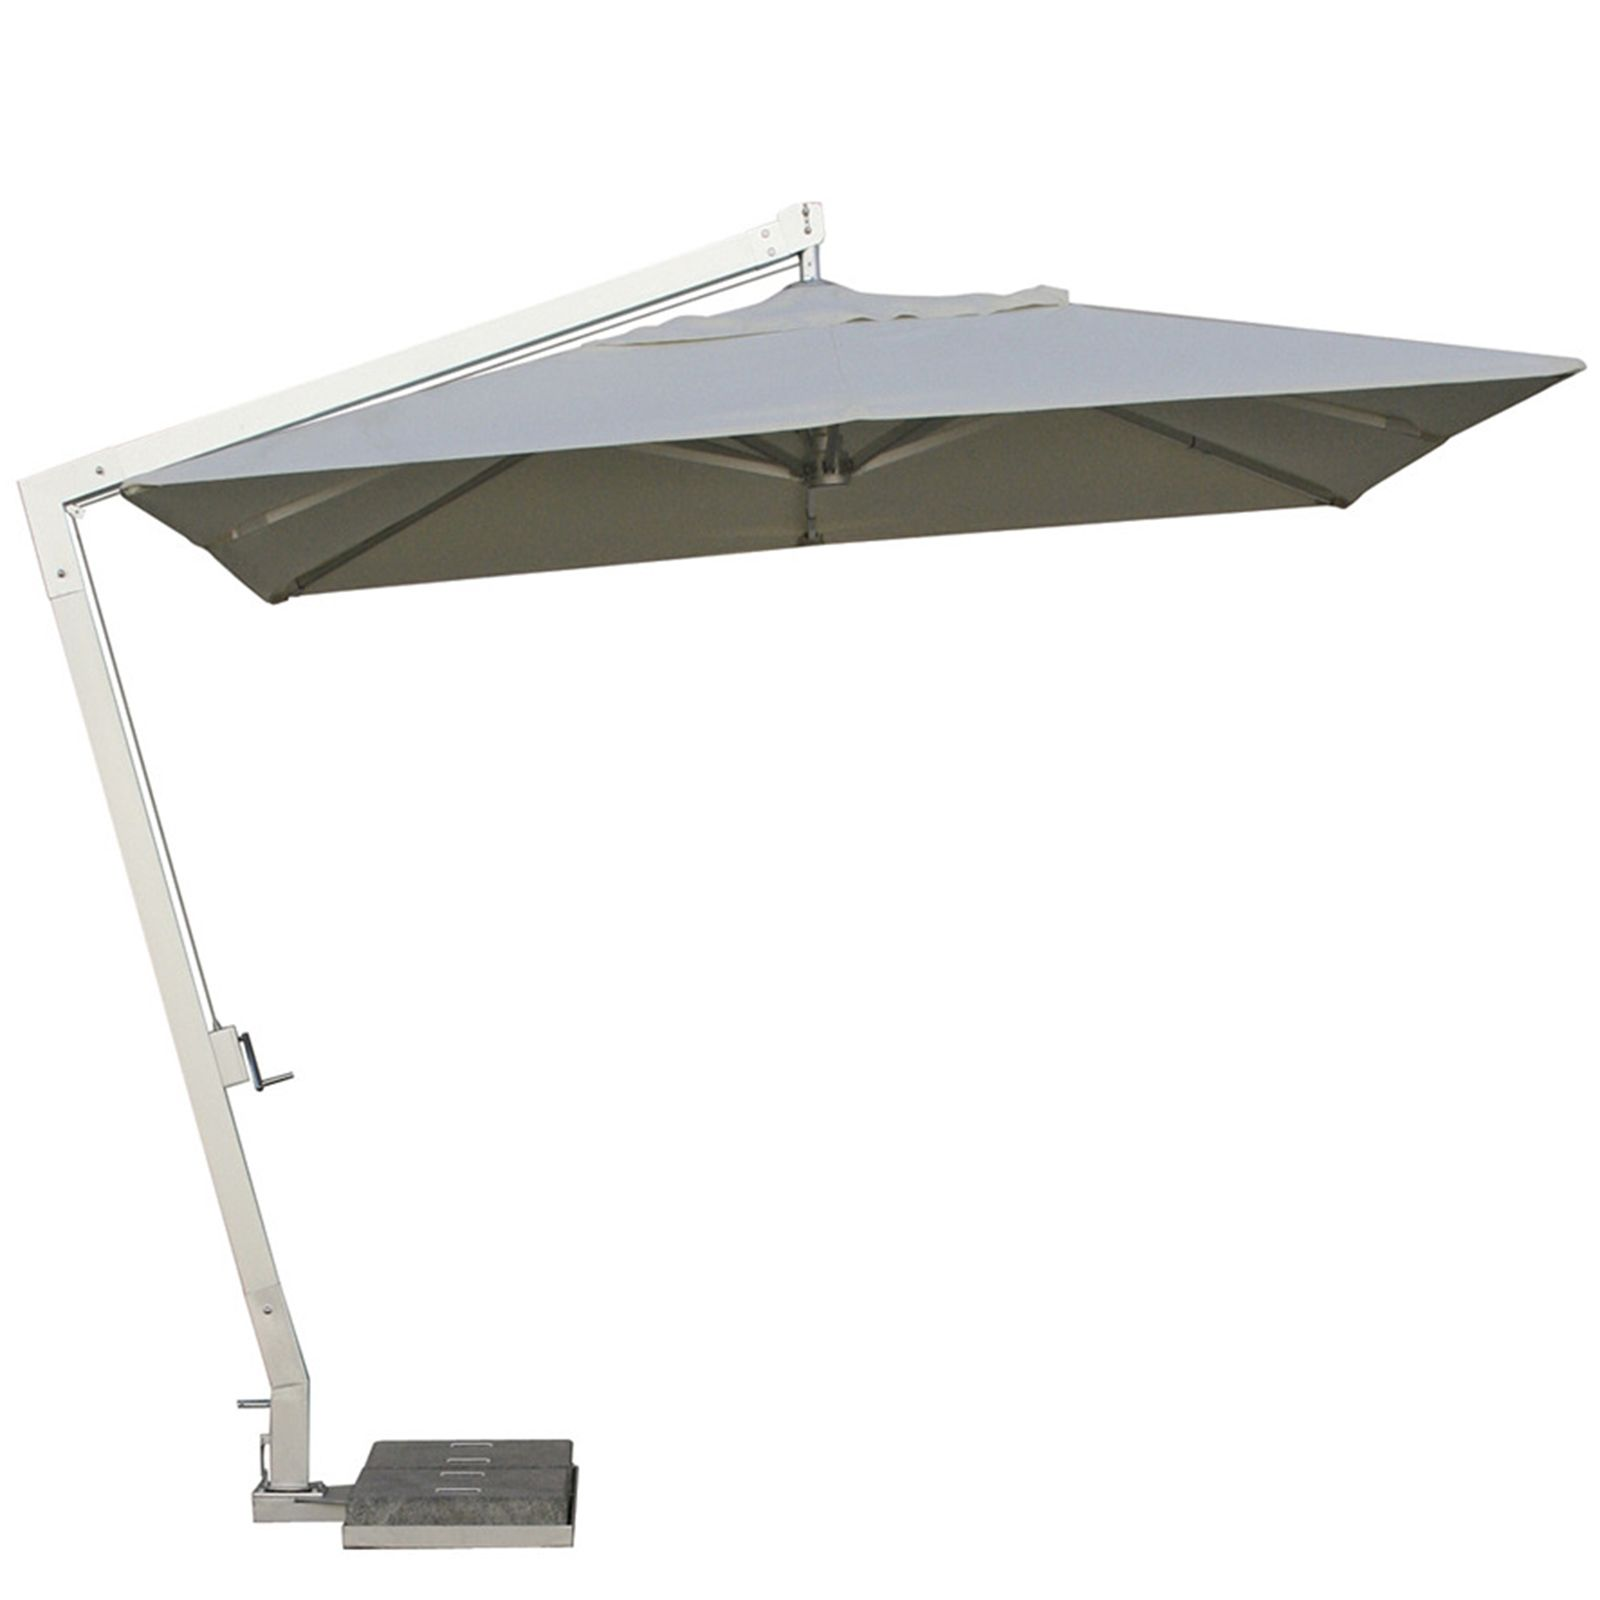 Superb Fill Your Patio With Janus Et Cie Outdoor Furniture: Charming Patio Umbrella  In White By Janus Et Cie Outdoor Furniture For Outdoor Furniture Ideas